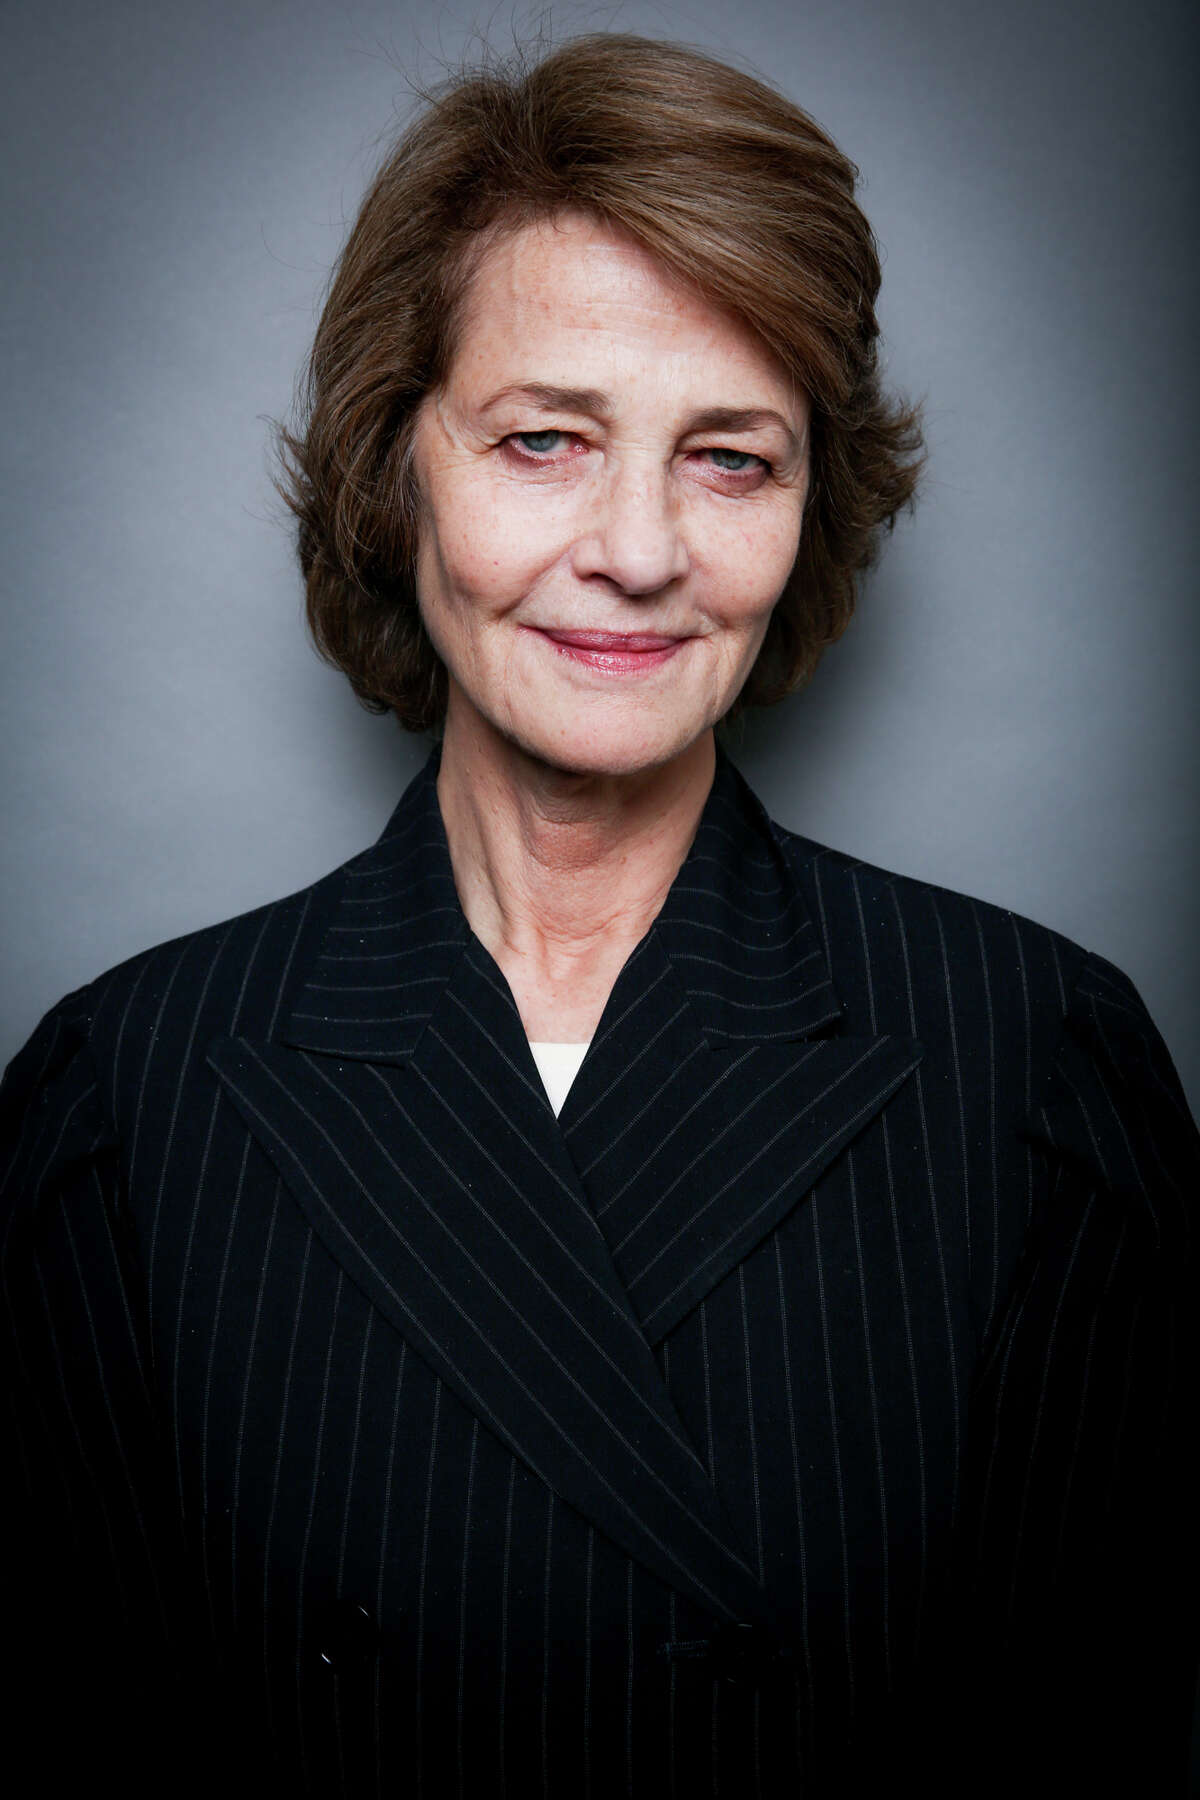 """Charlotte Rampling's performance in the marital drama """"45 Years"""" resulted in her first Oscar nomination."""